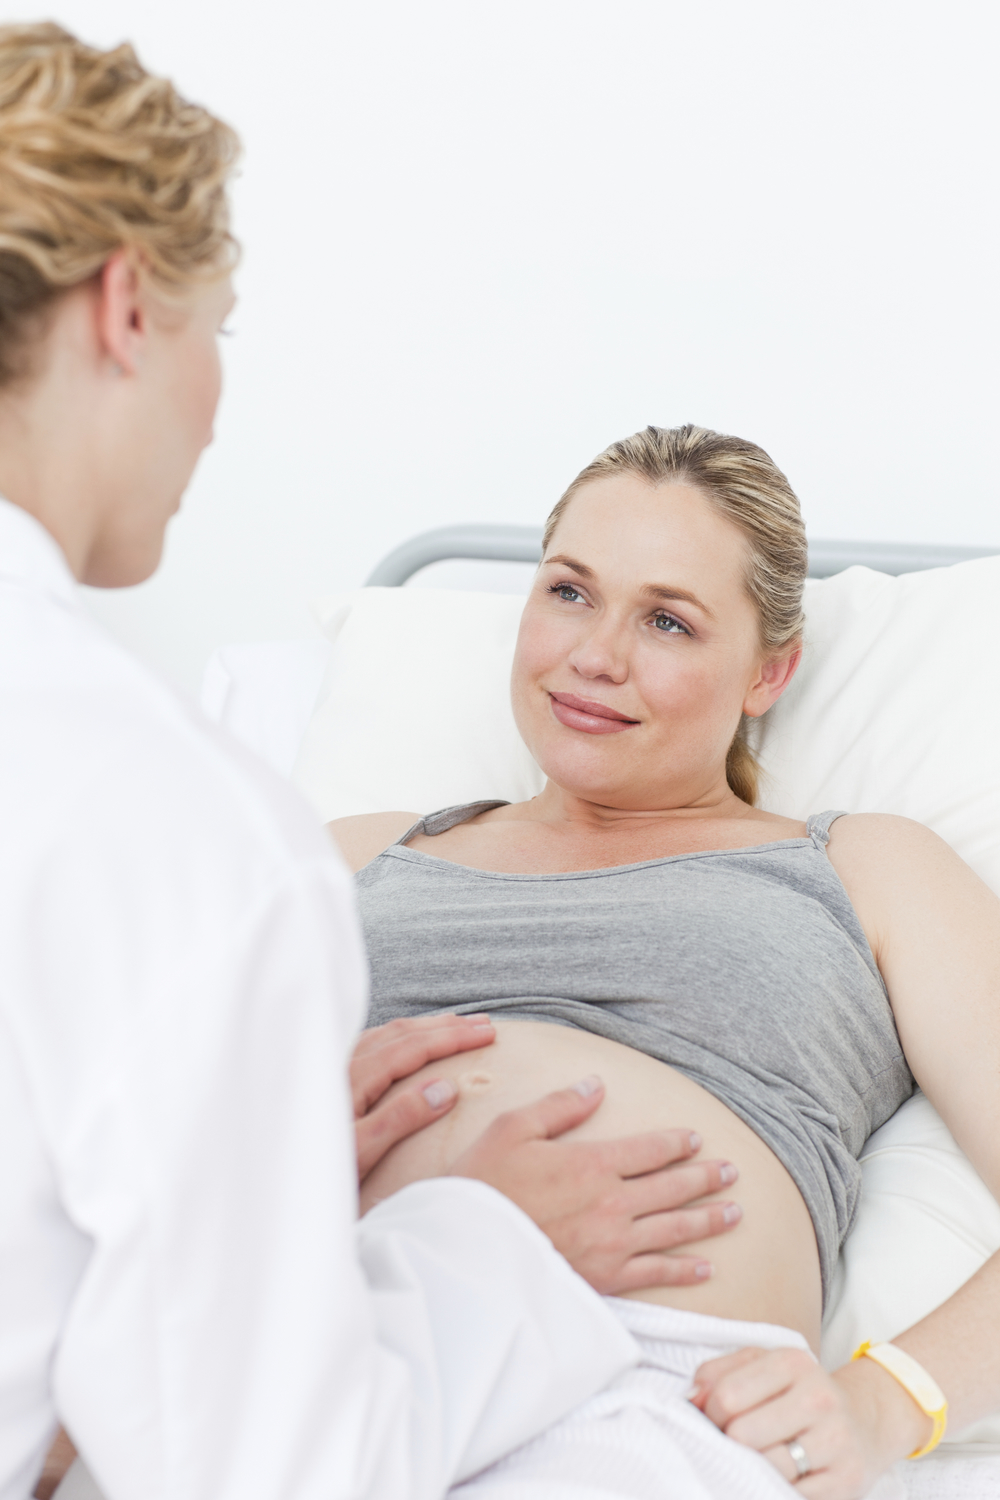 NJ Midwives- hollistic, quality obstetrical care